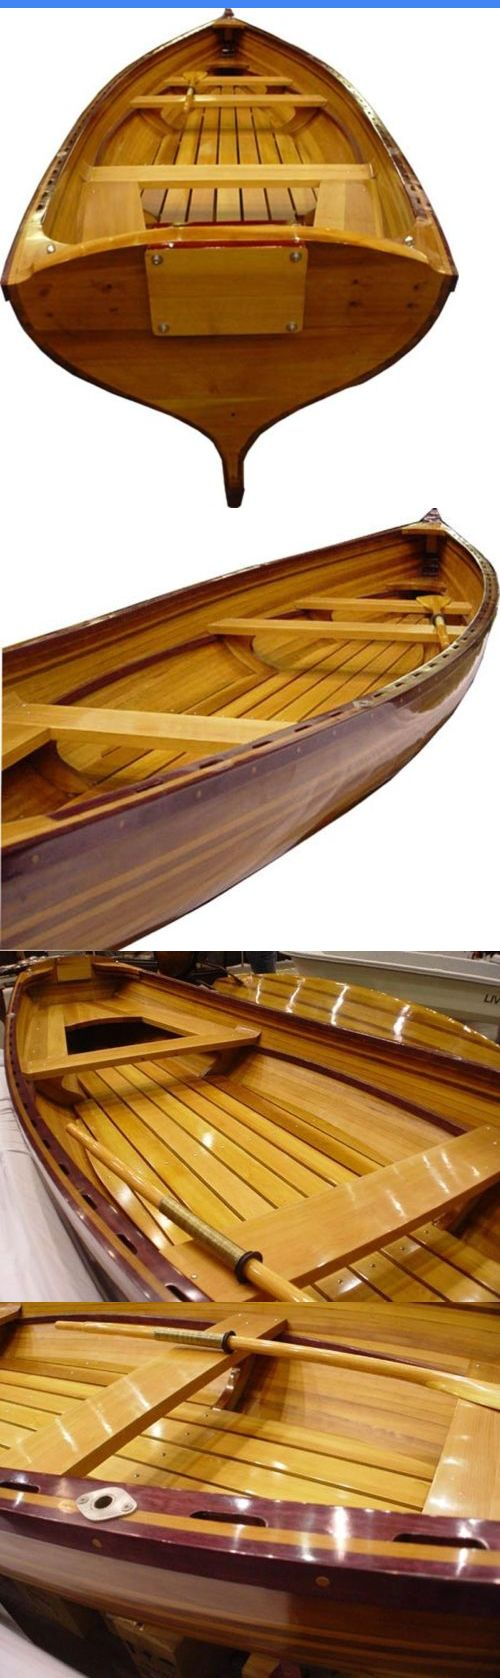 Canoes 23800: Dinghy Real Whitehall 17-Ft 4-People Marine Vanish Varnish Epoxy Resin Str BUY IT NOW ONLY: $18529.0